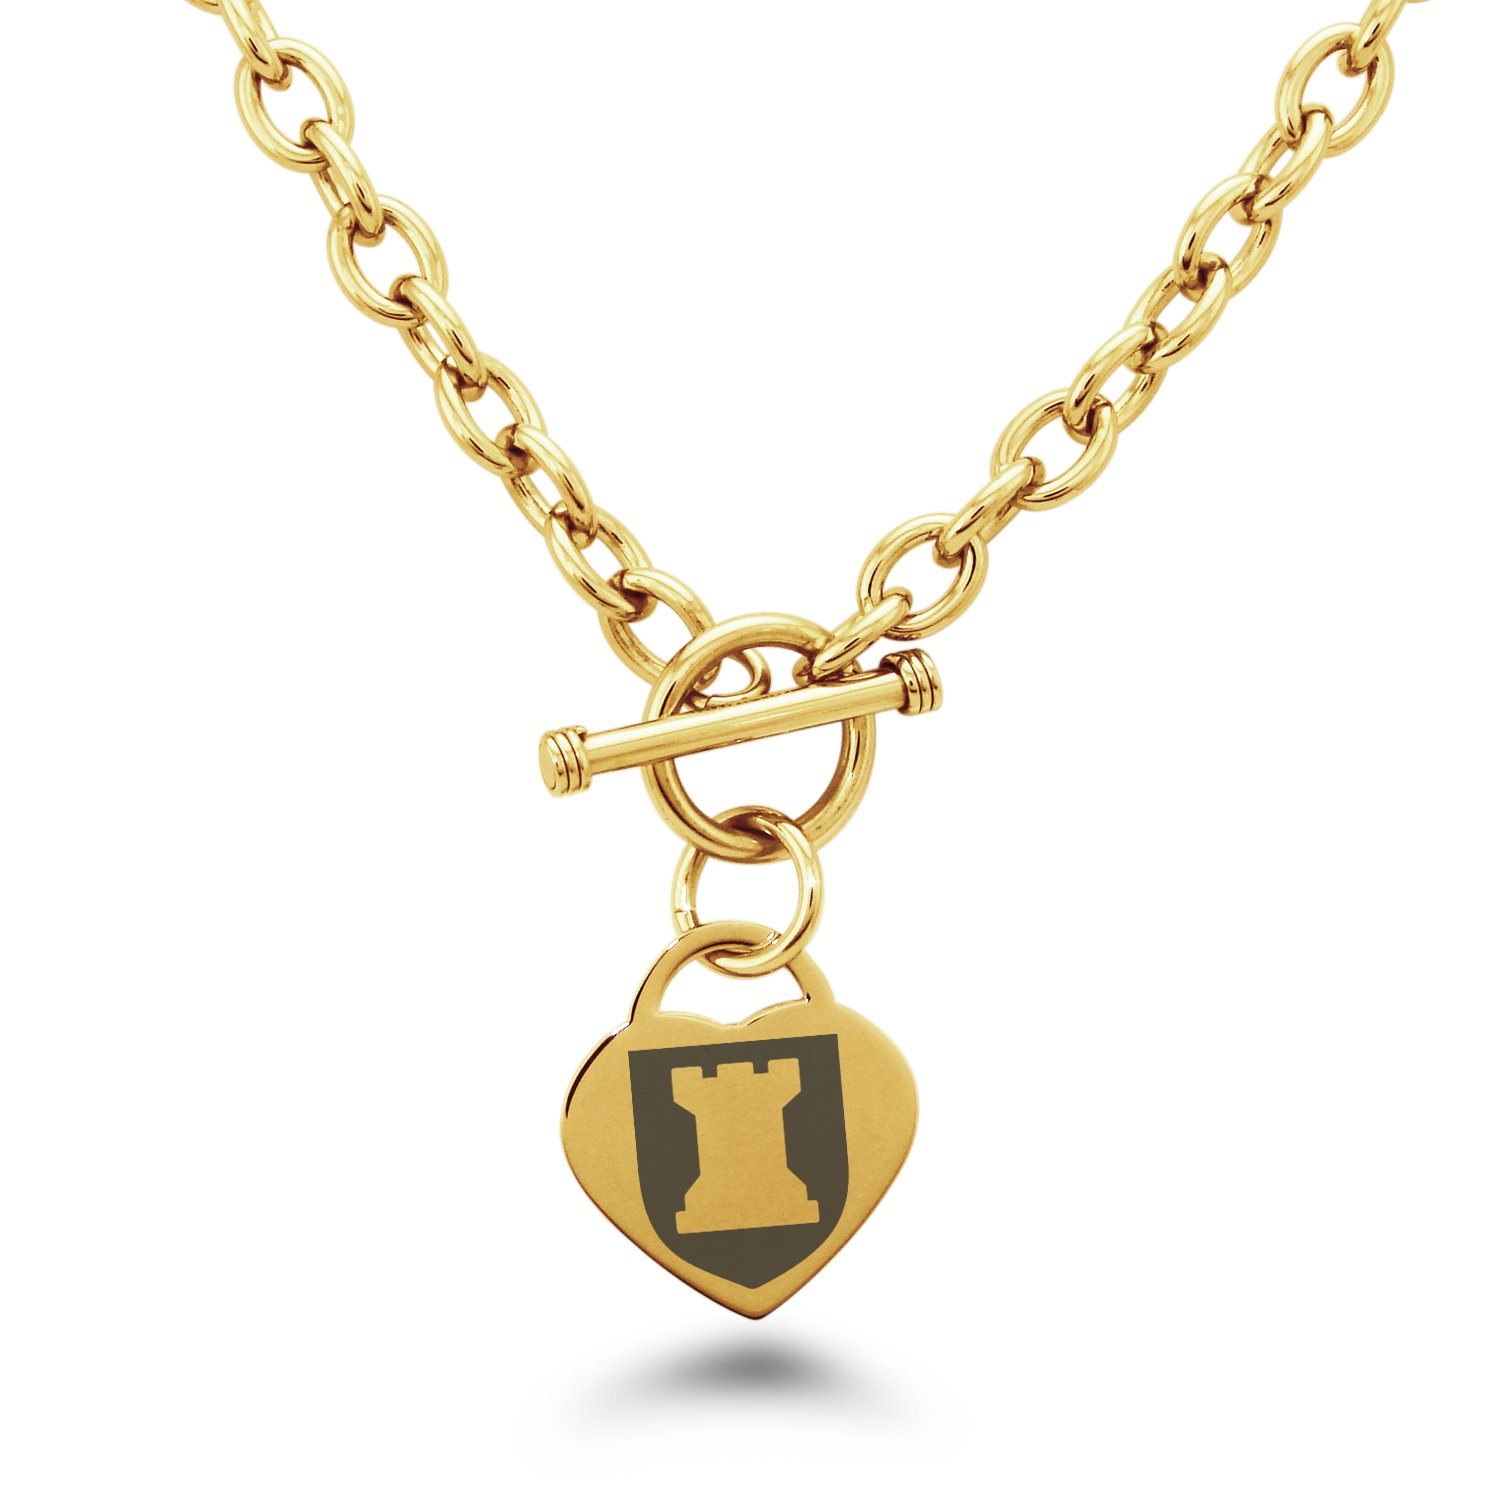 Tioneer Gold Plated Stainless Steel Rook Strategy Coat of Arms Shield Symbols Heart Charm, Necklace Only